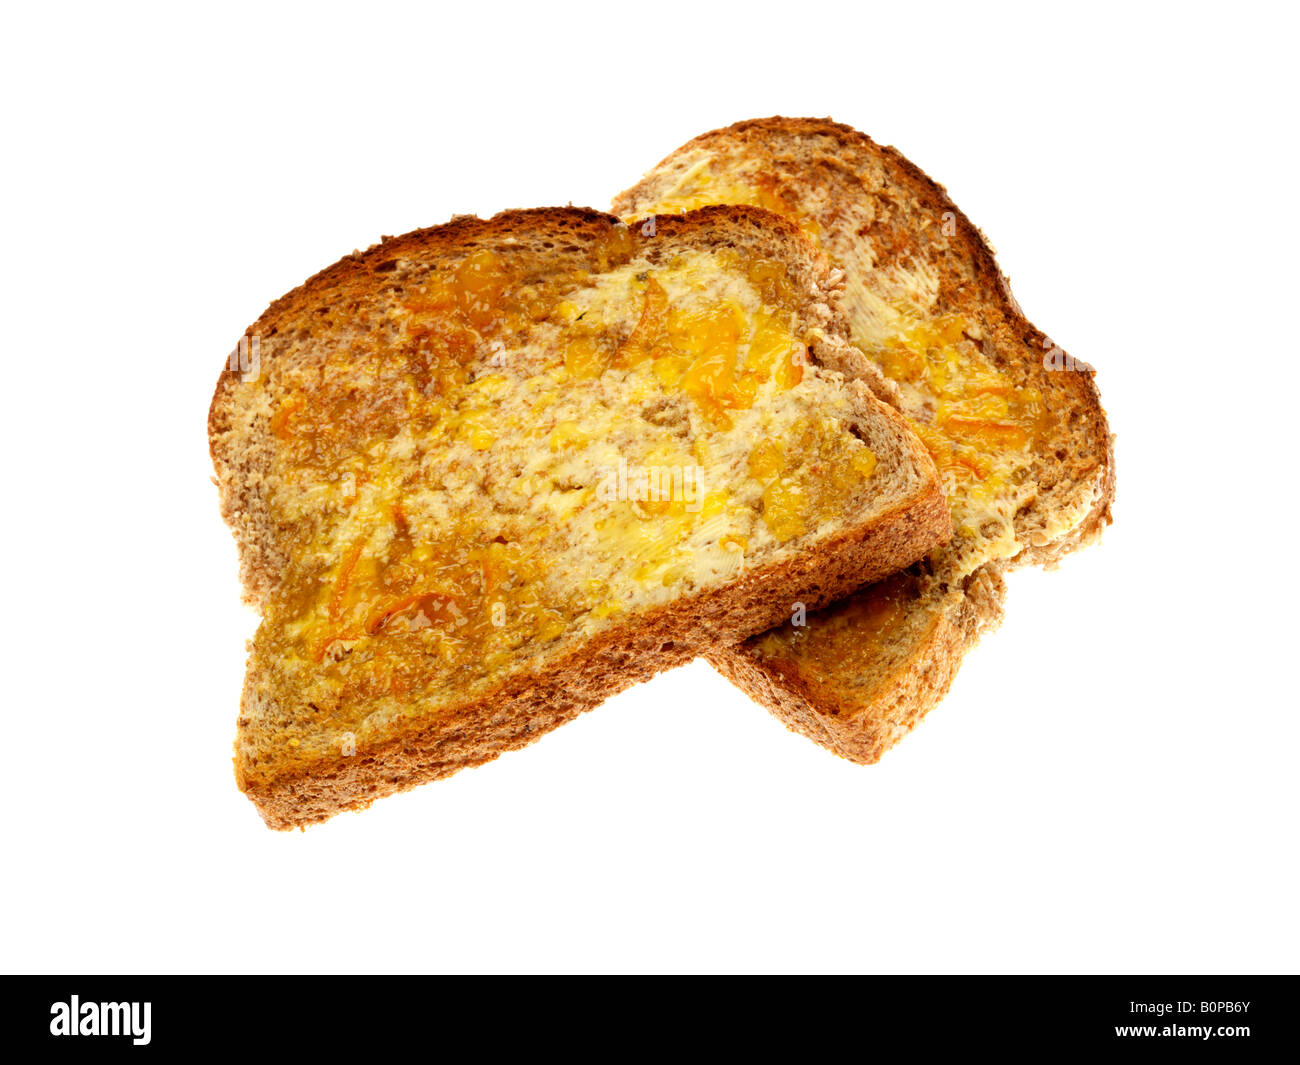 Fresh Sweet Wholemeal Toast With Marmalade Isolated Against A White Background With A Clipping Path And No People Stock Photo